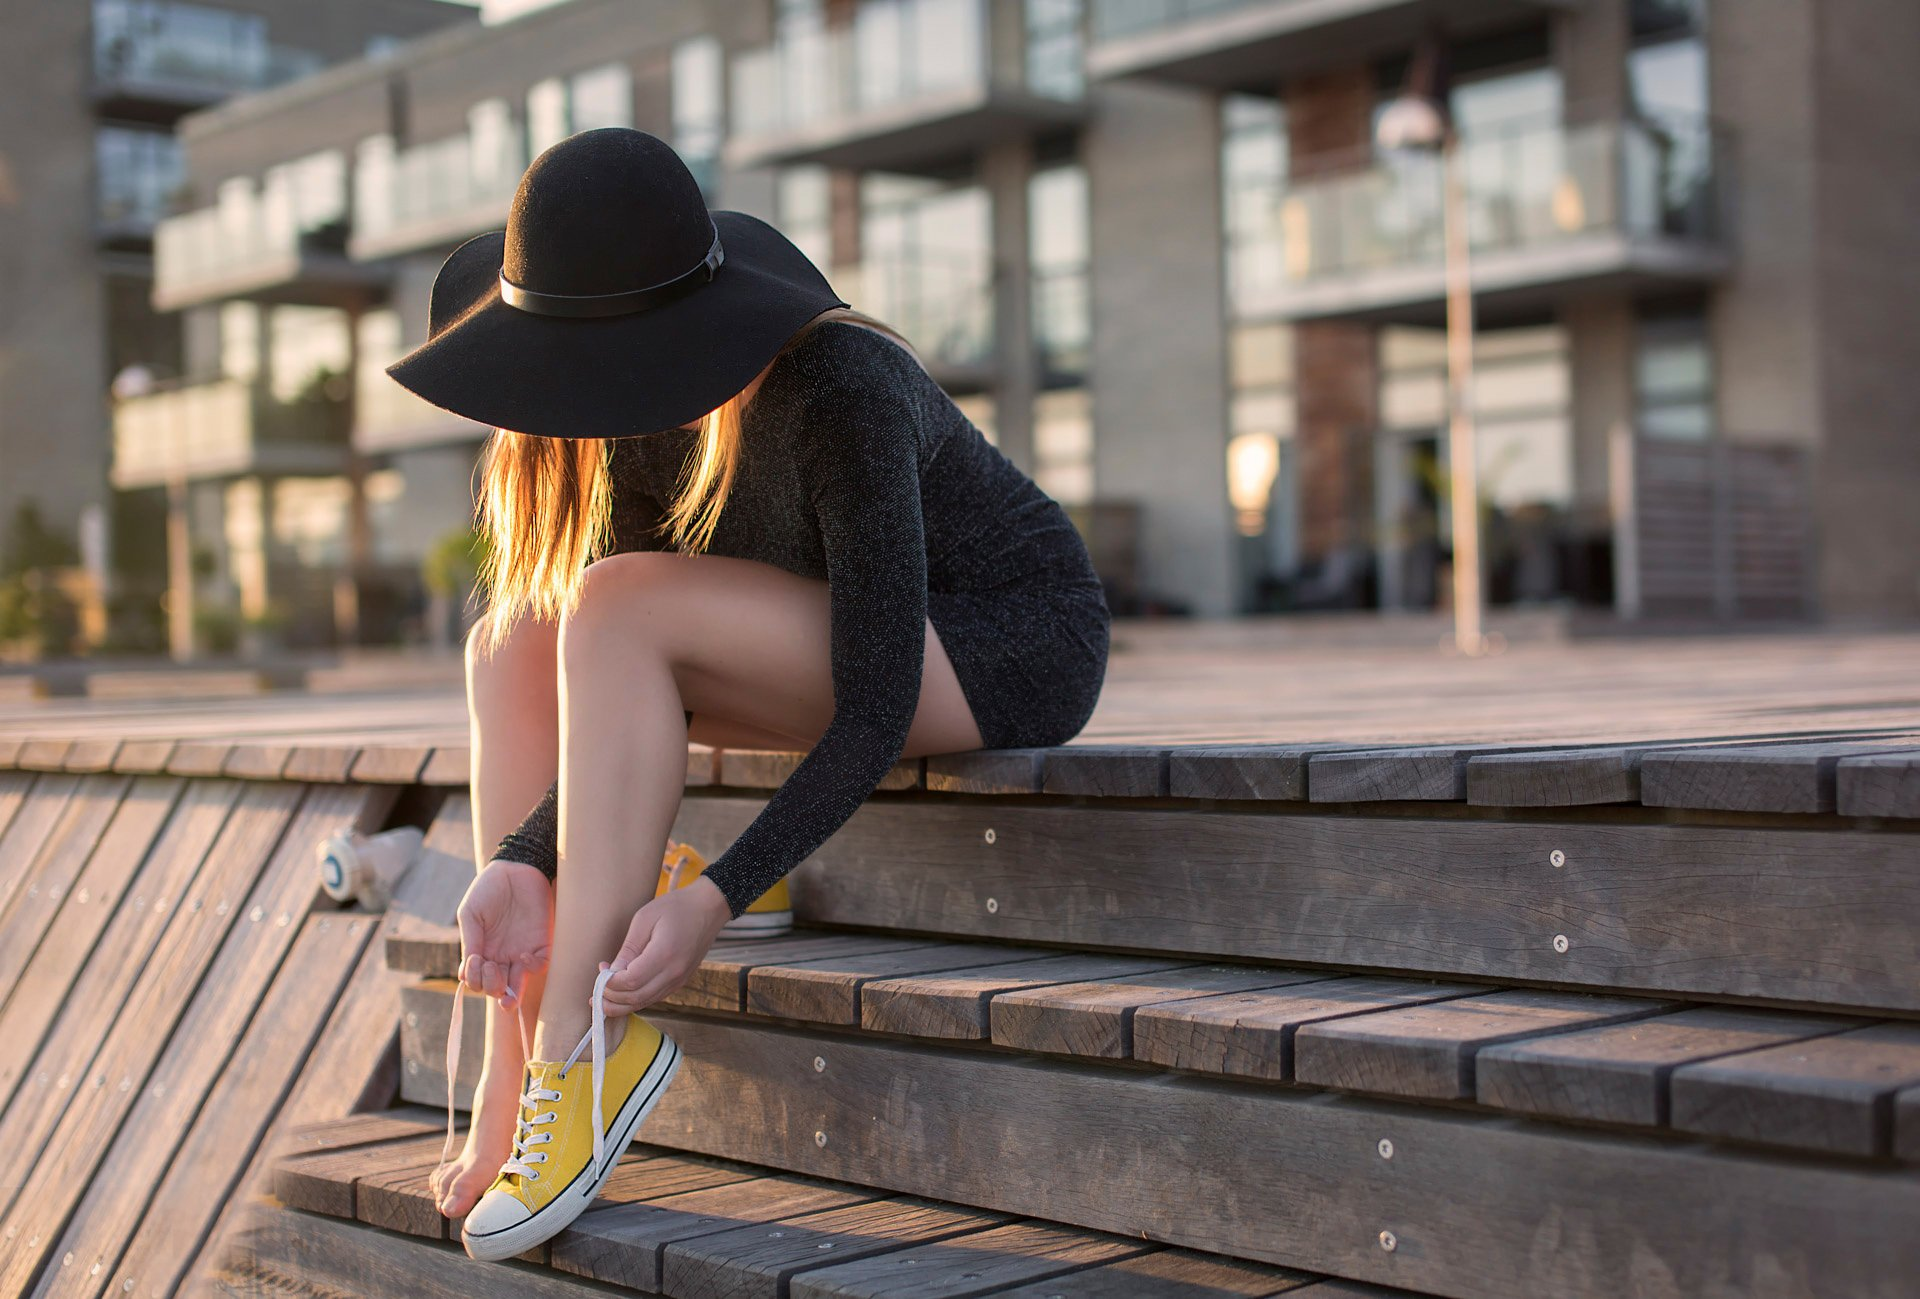 yellow shoes girl shoes laces feet hat a step town anders hansen